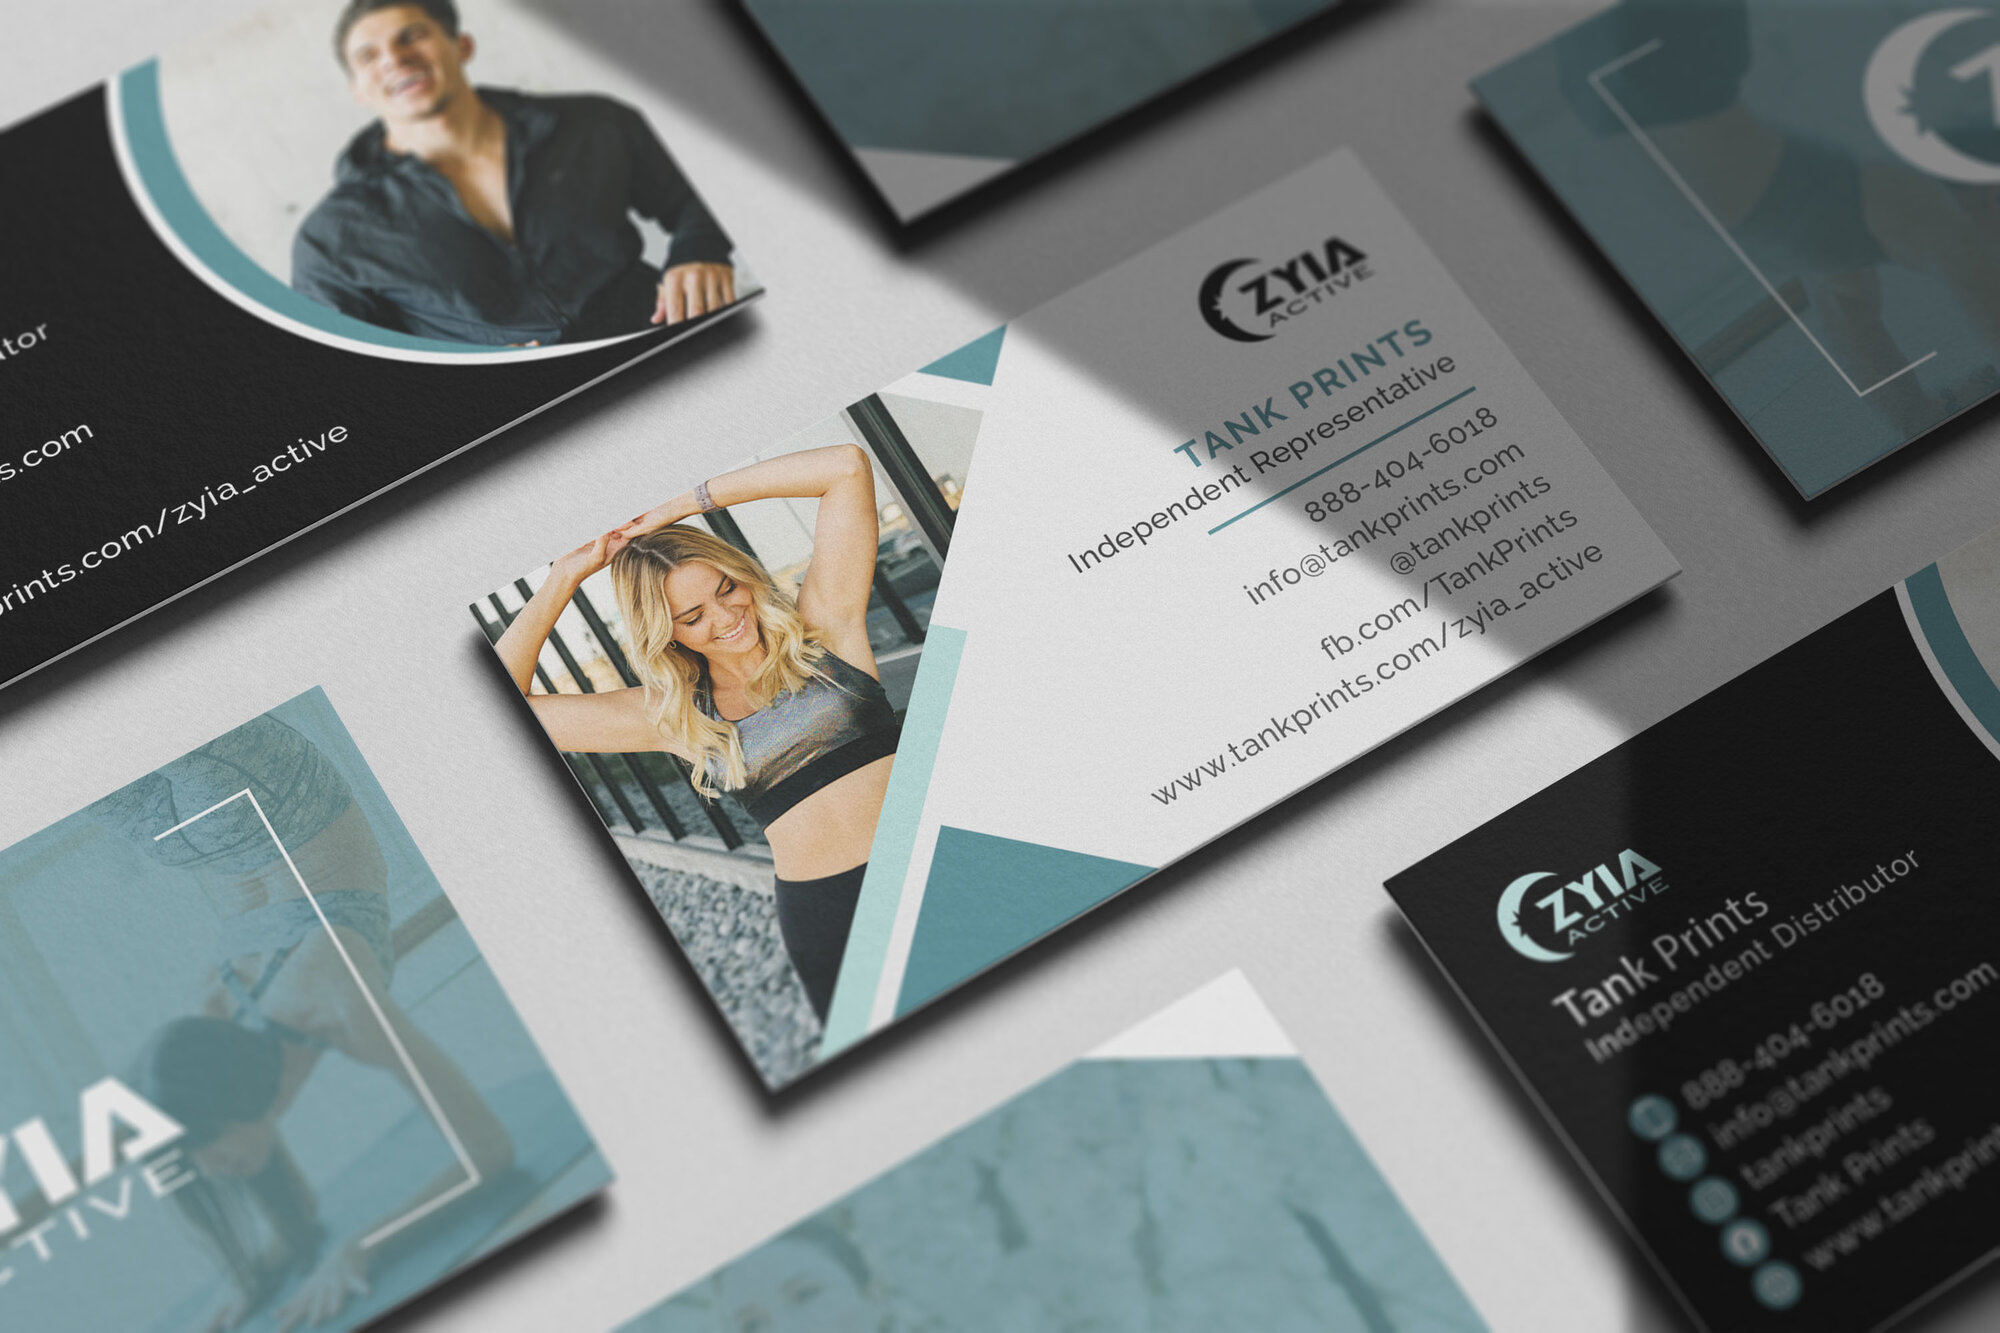 Zyia Business Cards